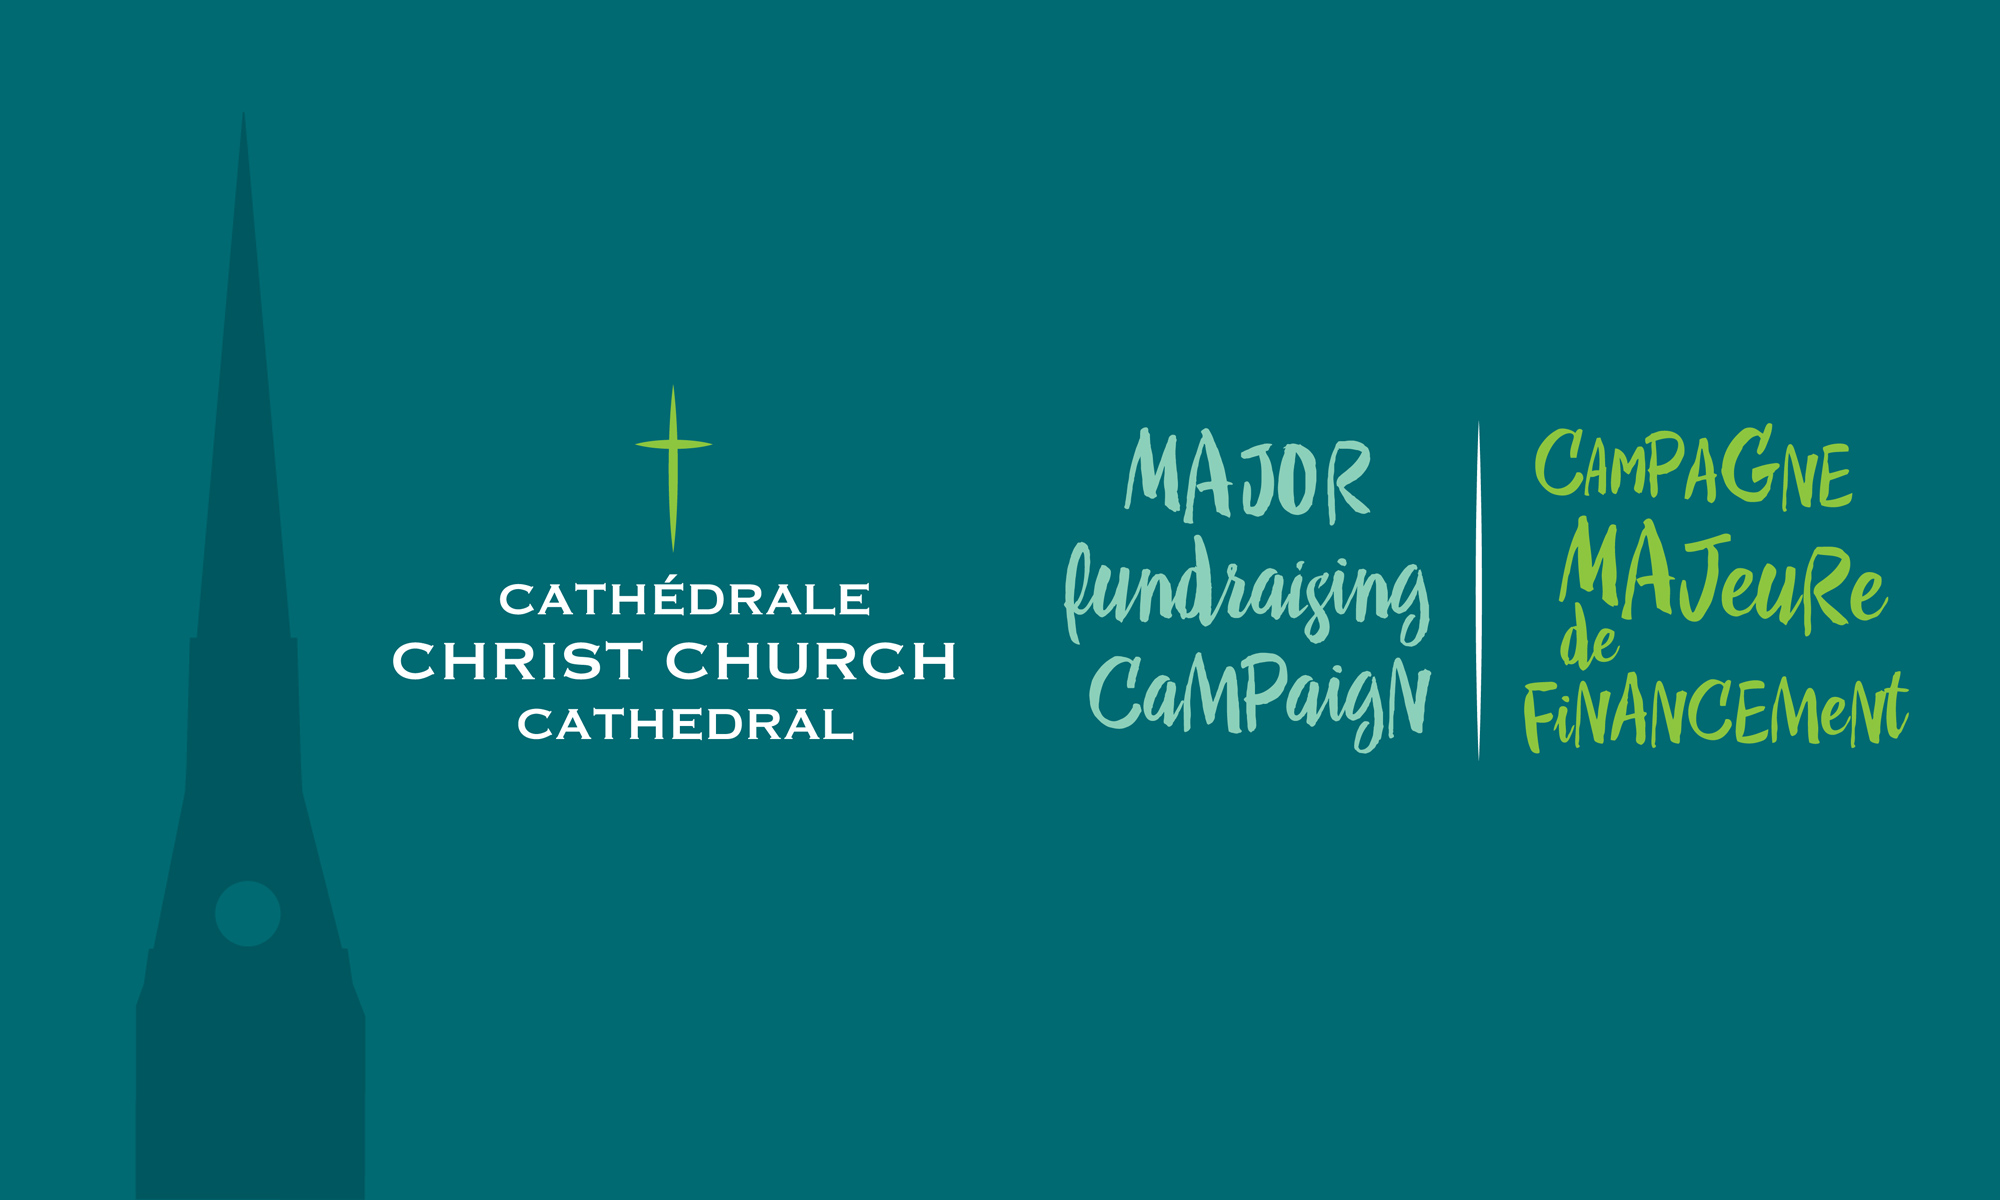 Christ Church Cathedral Major Fundraising Campaign